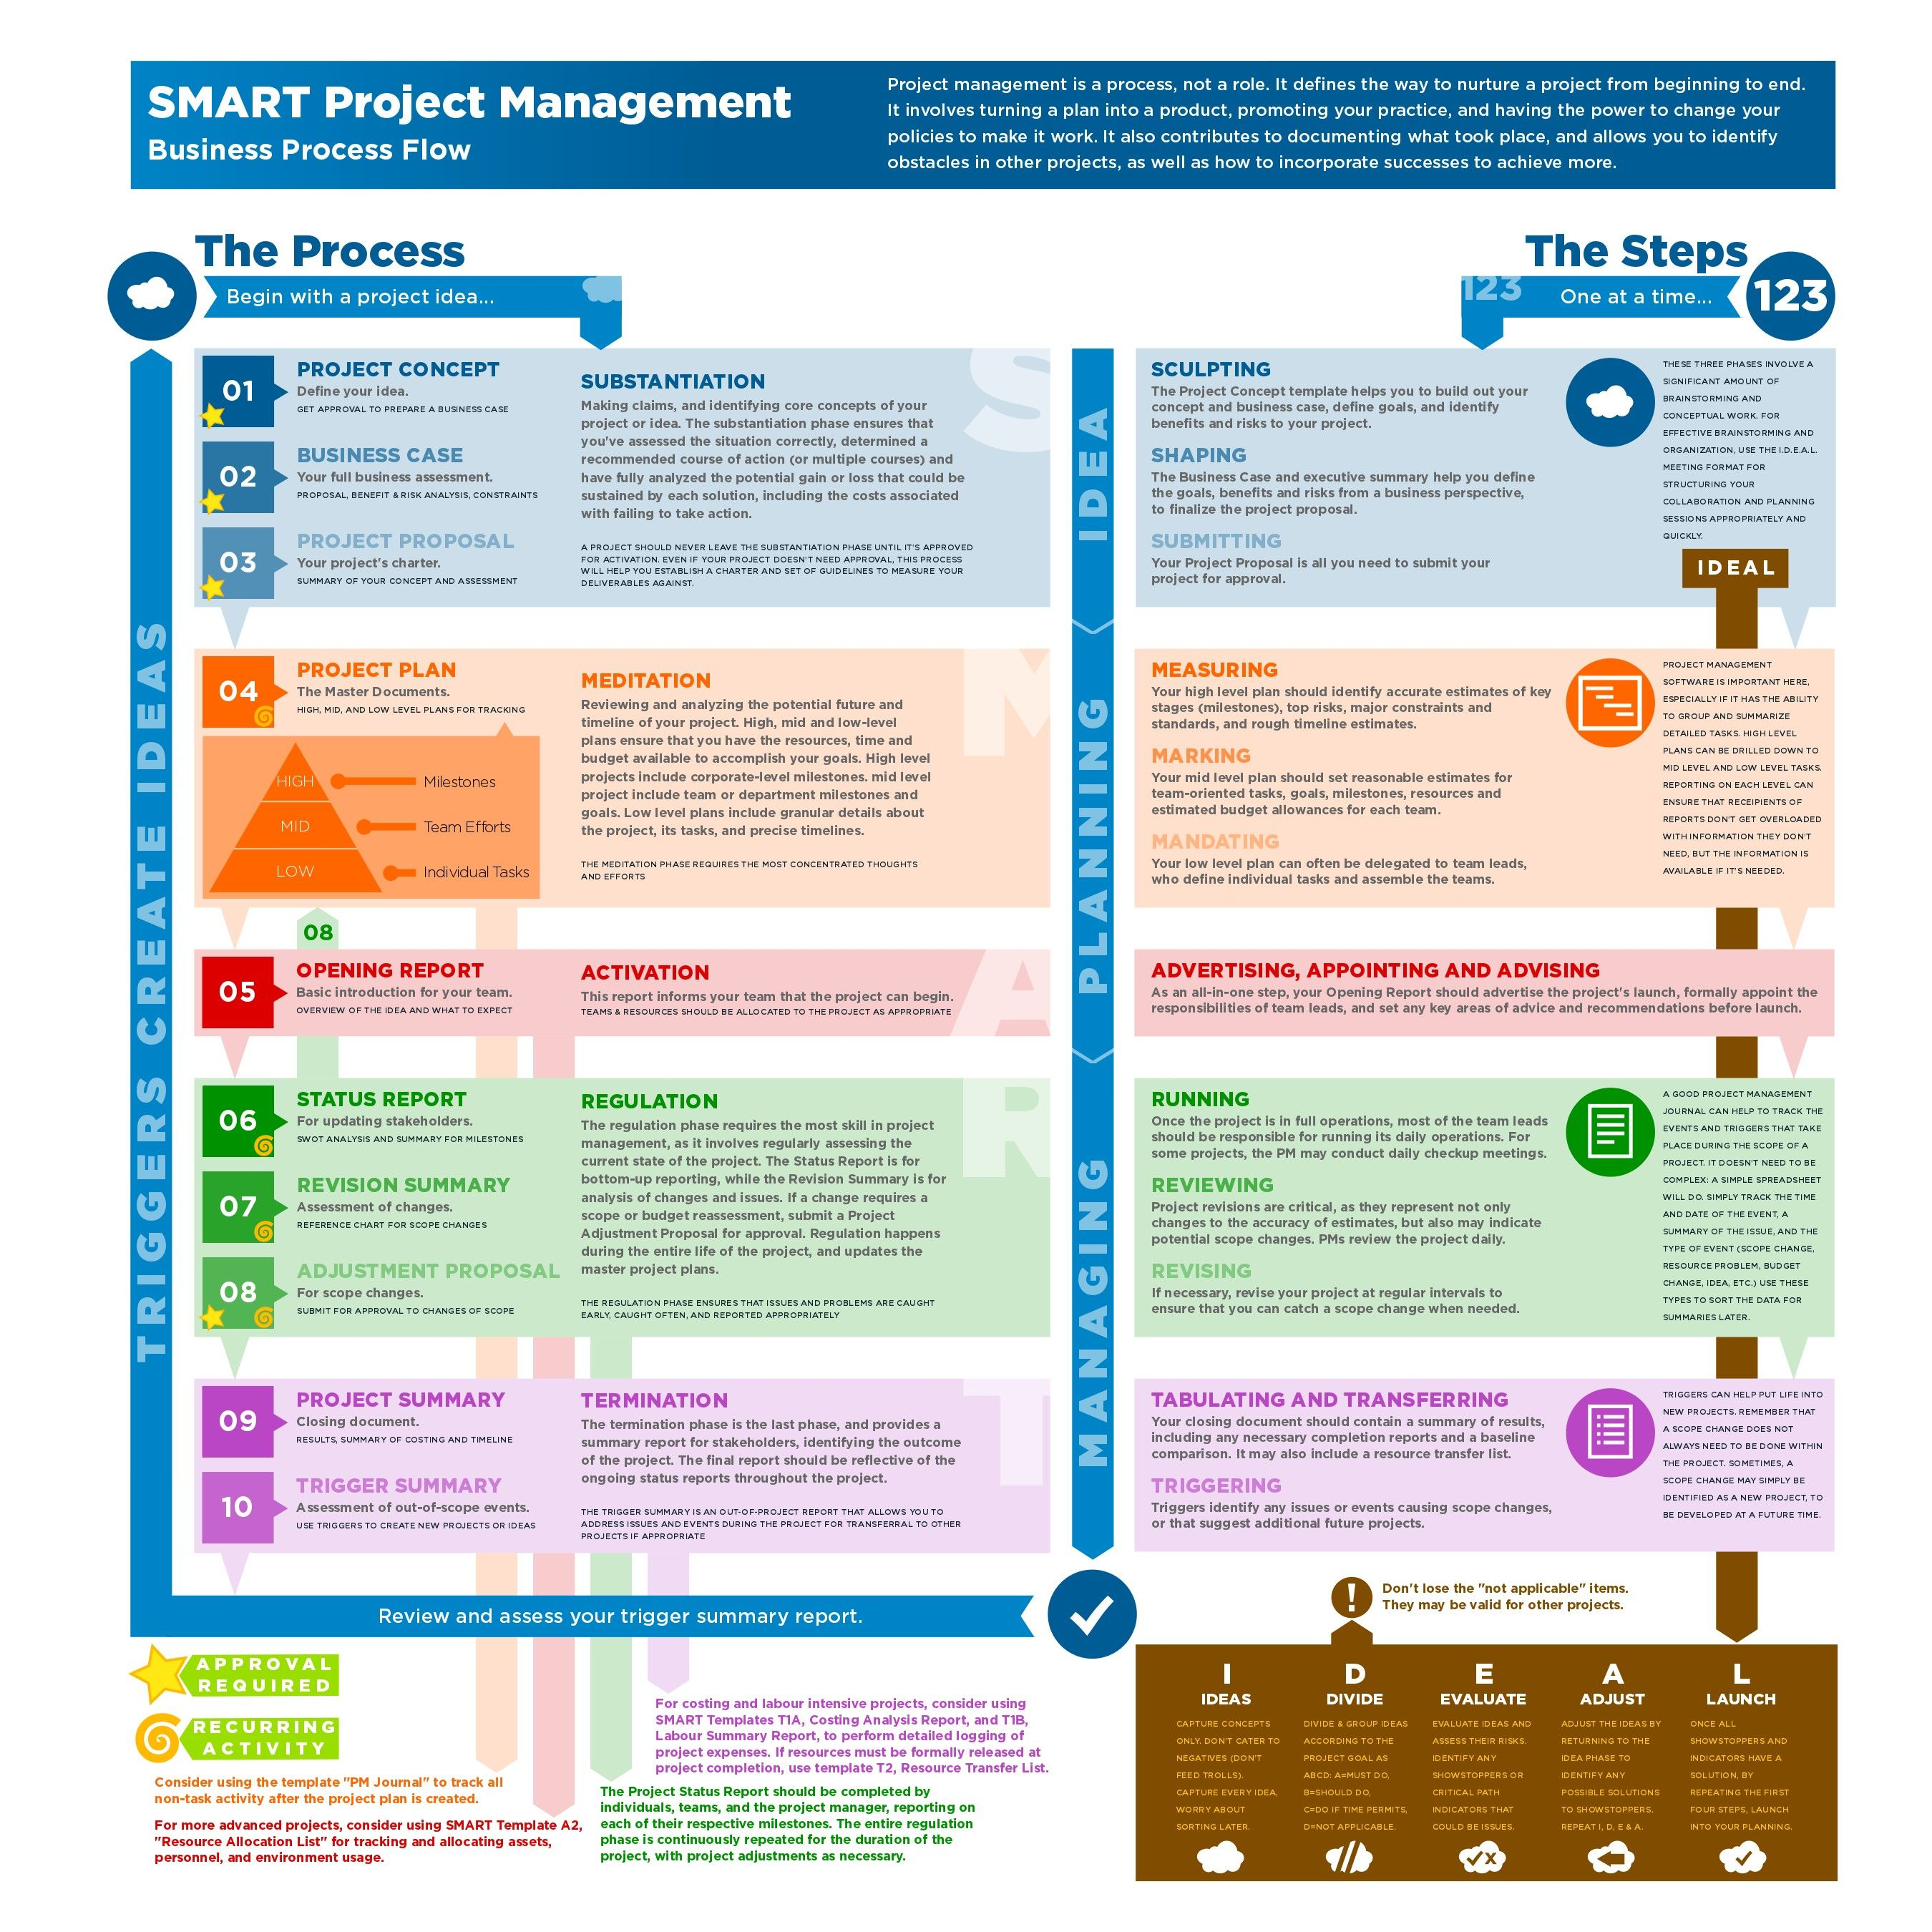 project and change management Page 1 of 6 course syllabus mis7671 project and change management fall 2014 time & place: wednesday, 7:10 pm - 10:10 pm, rm 227 fedex institute of technology (fit) instructor: jeffrey p kaleta, phd candidate and instructor of mis email: jkaleta@memphisedu (preferred please include zmis7671 [ in the subject line.